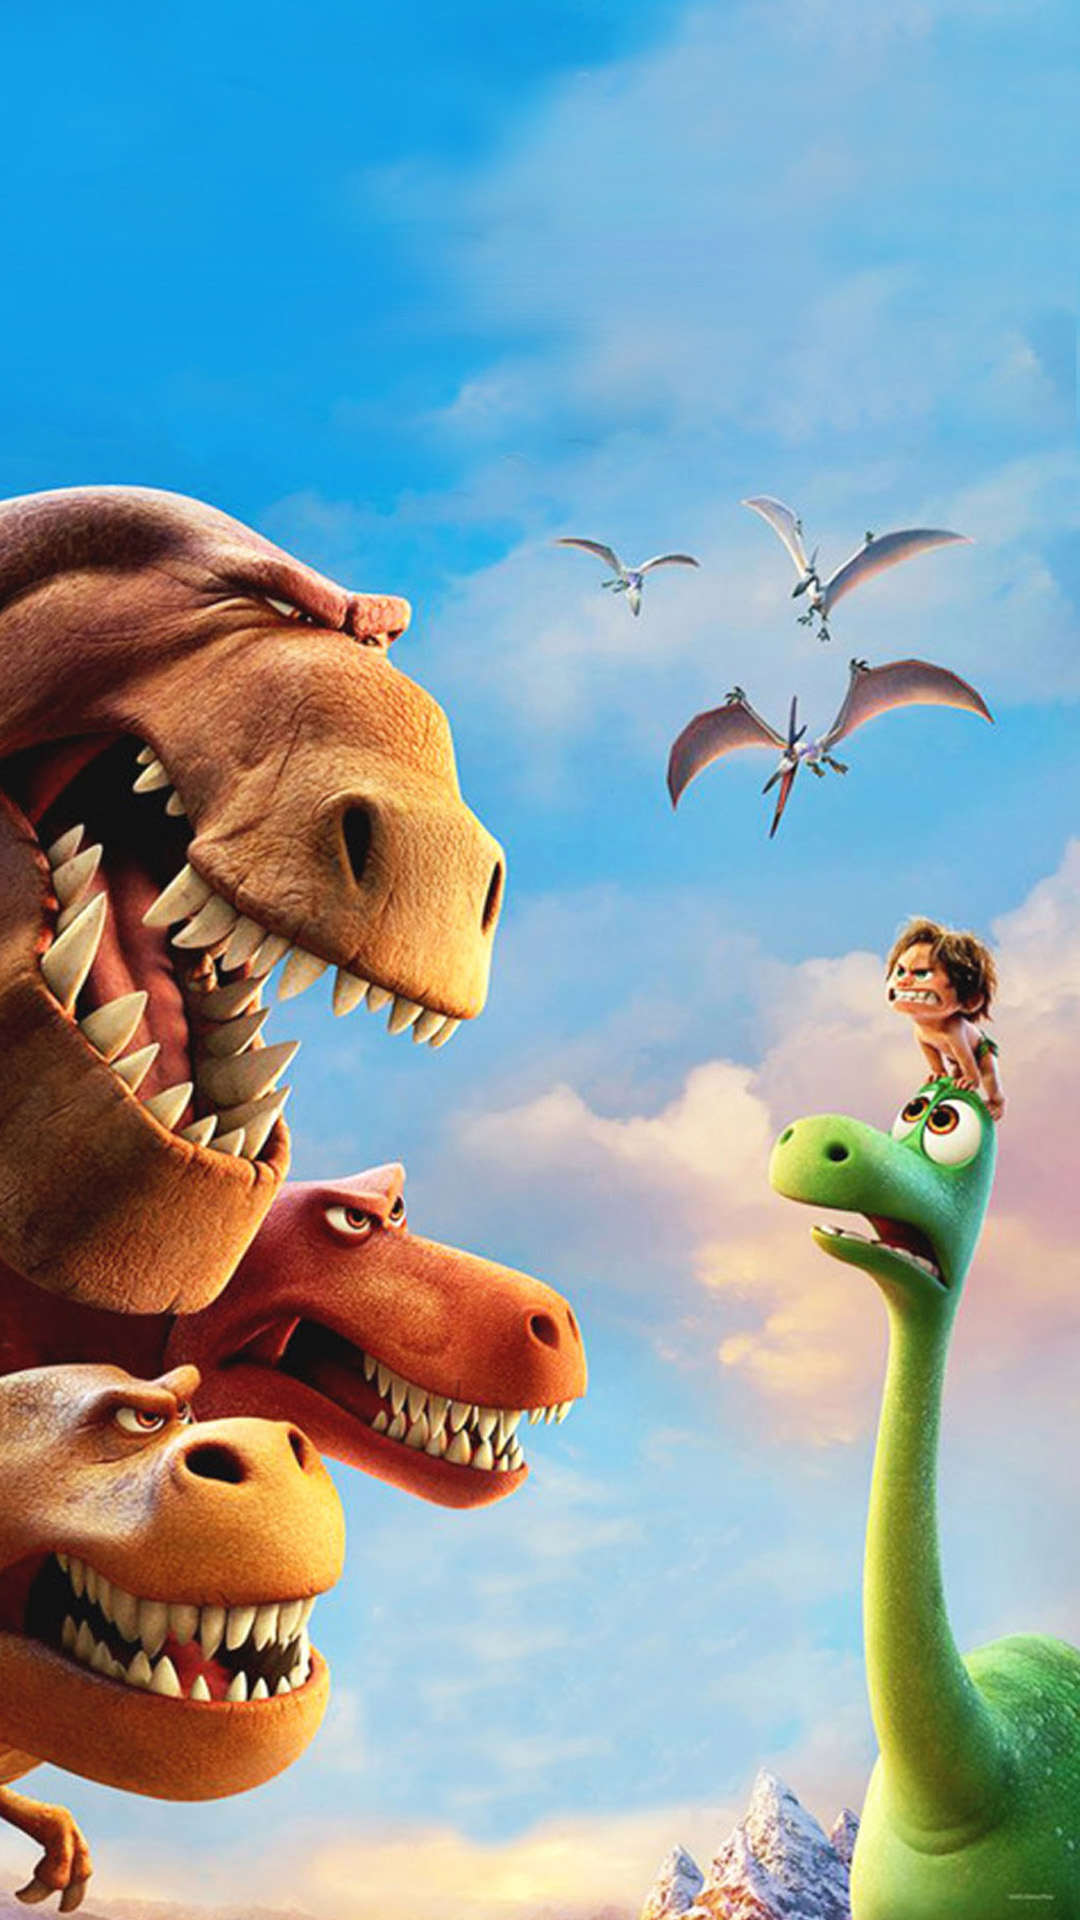 The Good Dinosaur Downloadable Wallpaper For Ios Android Phones For The Love Of Pixar